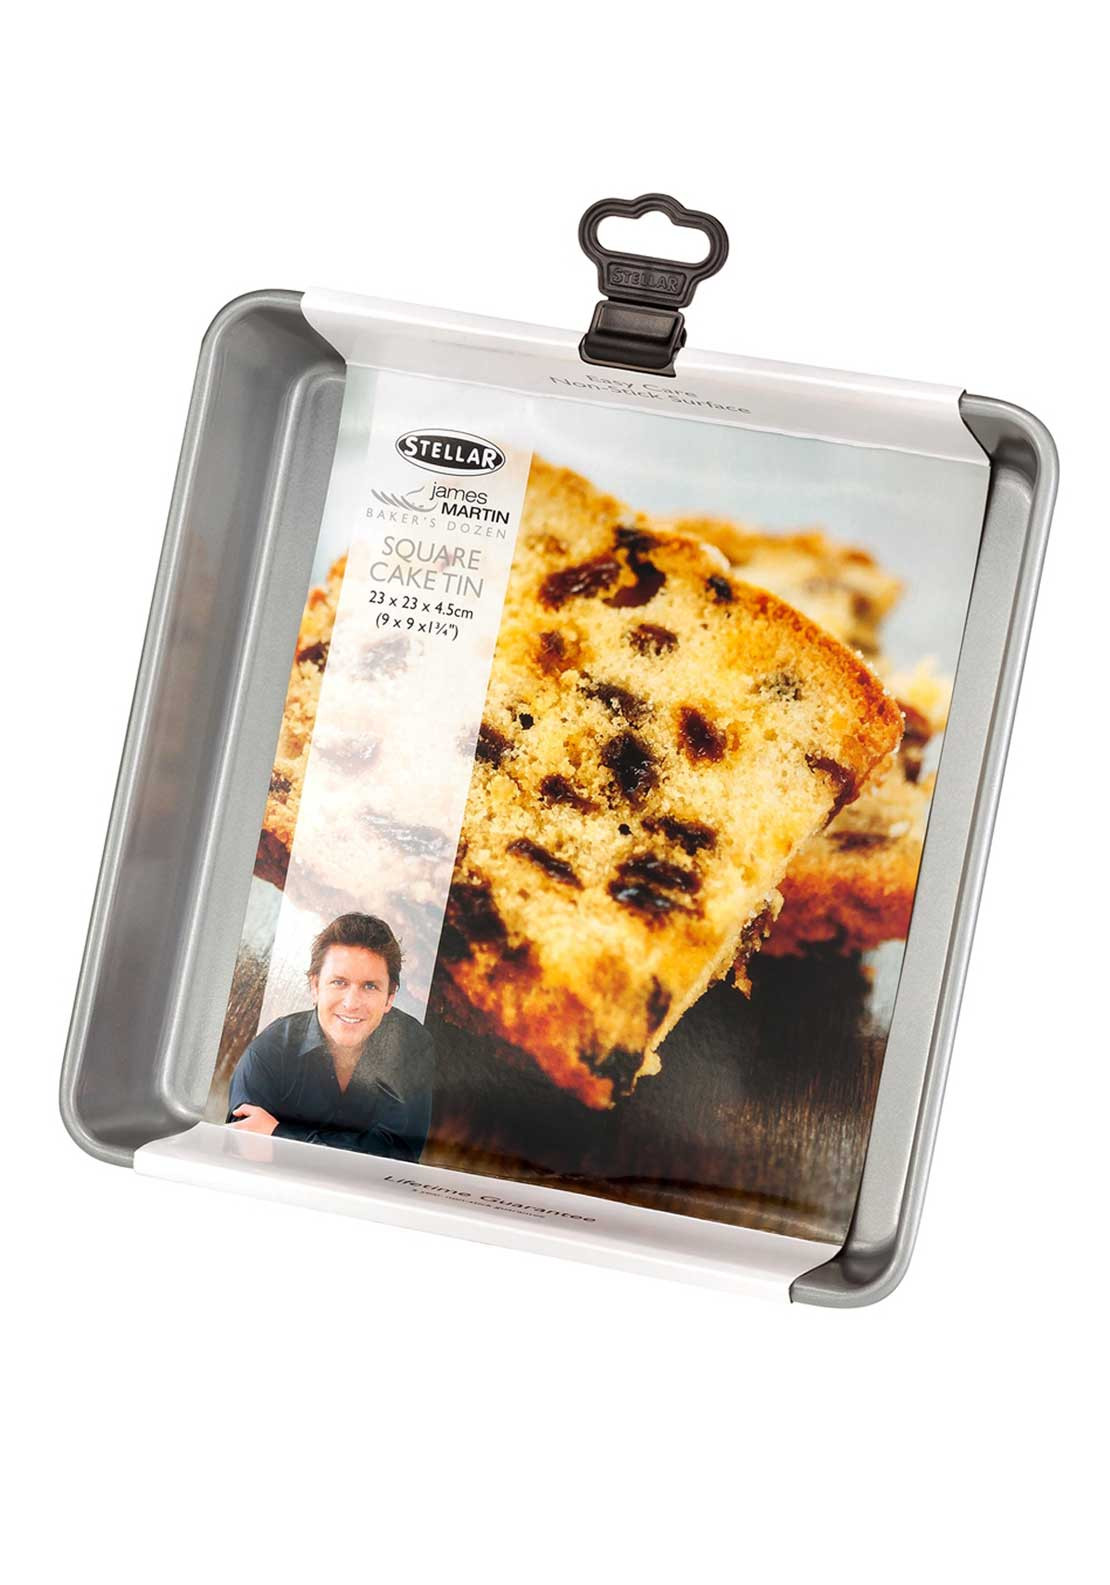 Stellar James Martin 23cm Square Cake Tin